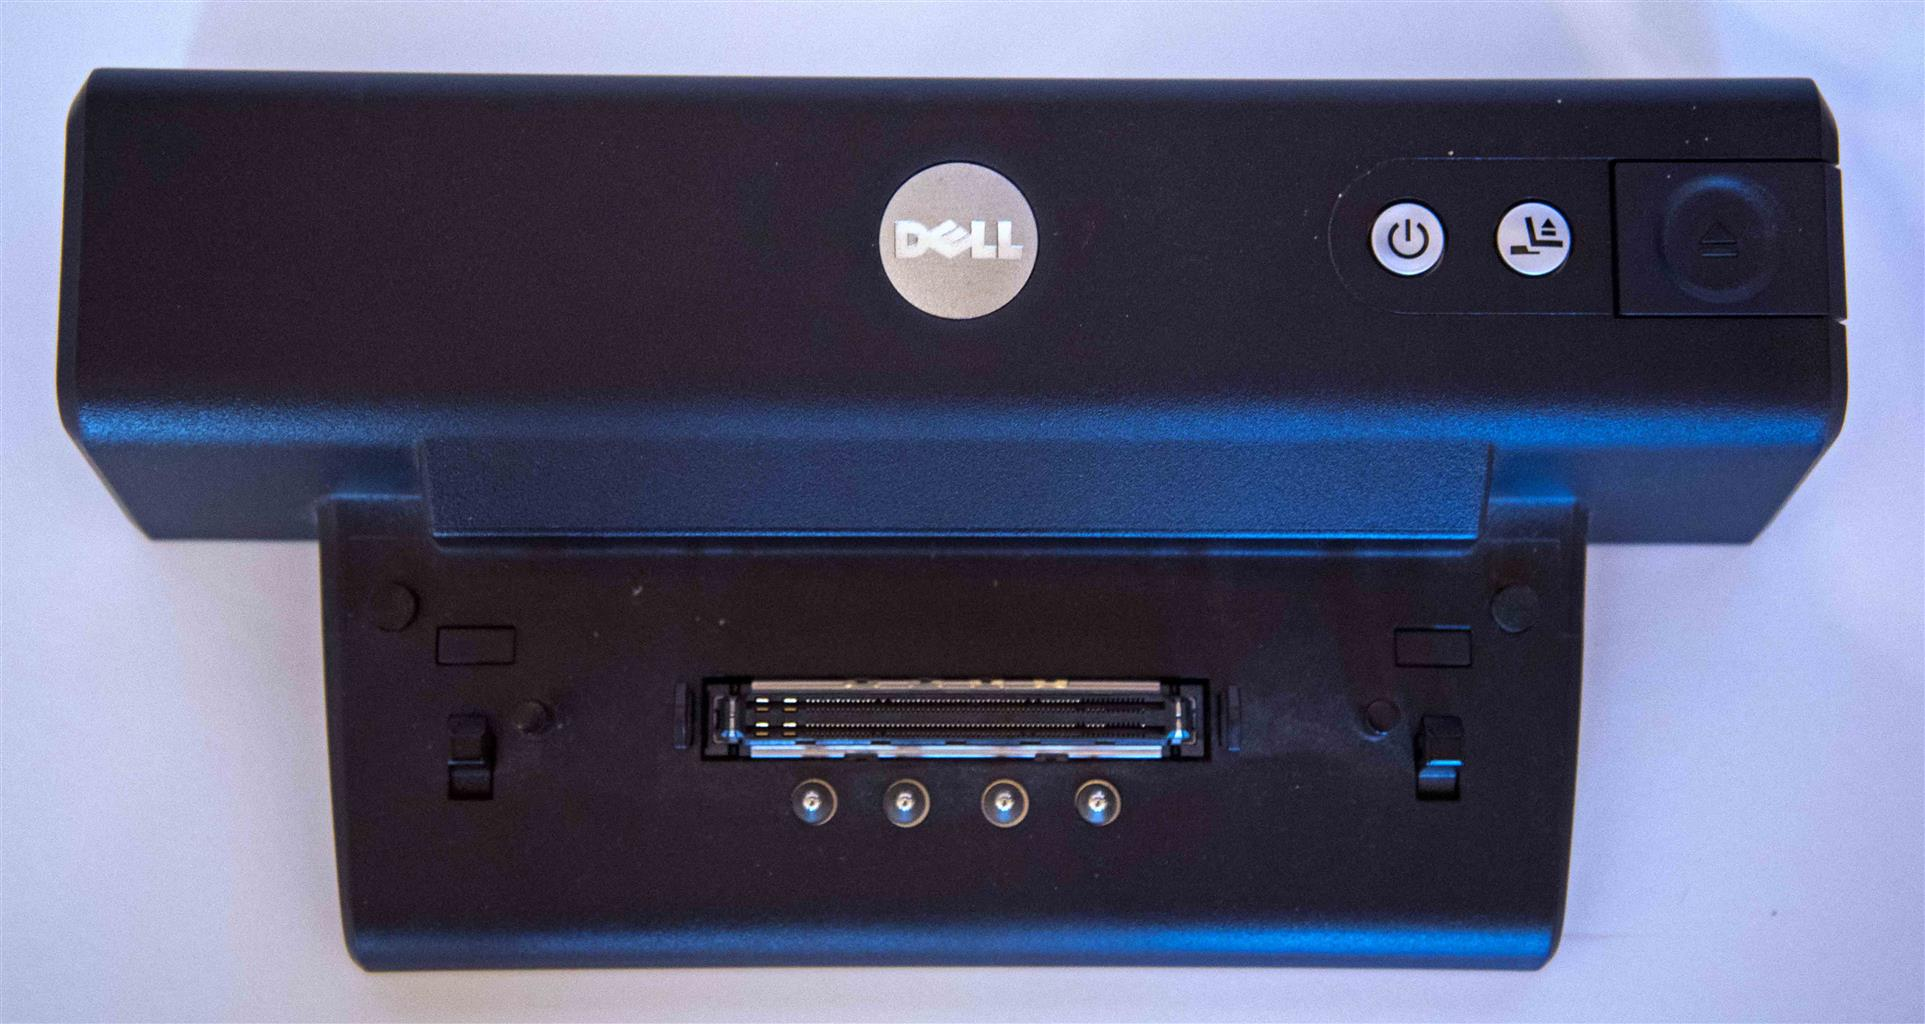 Dell desk station